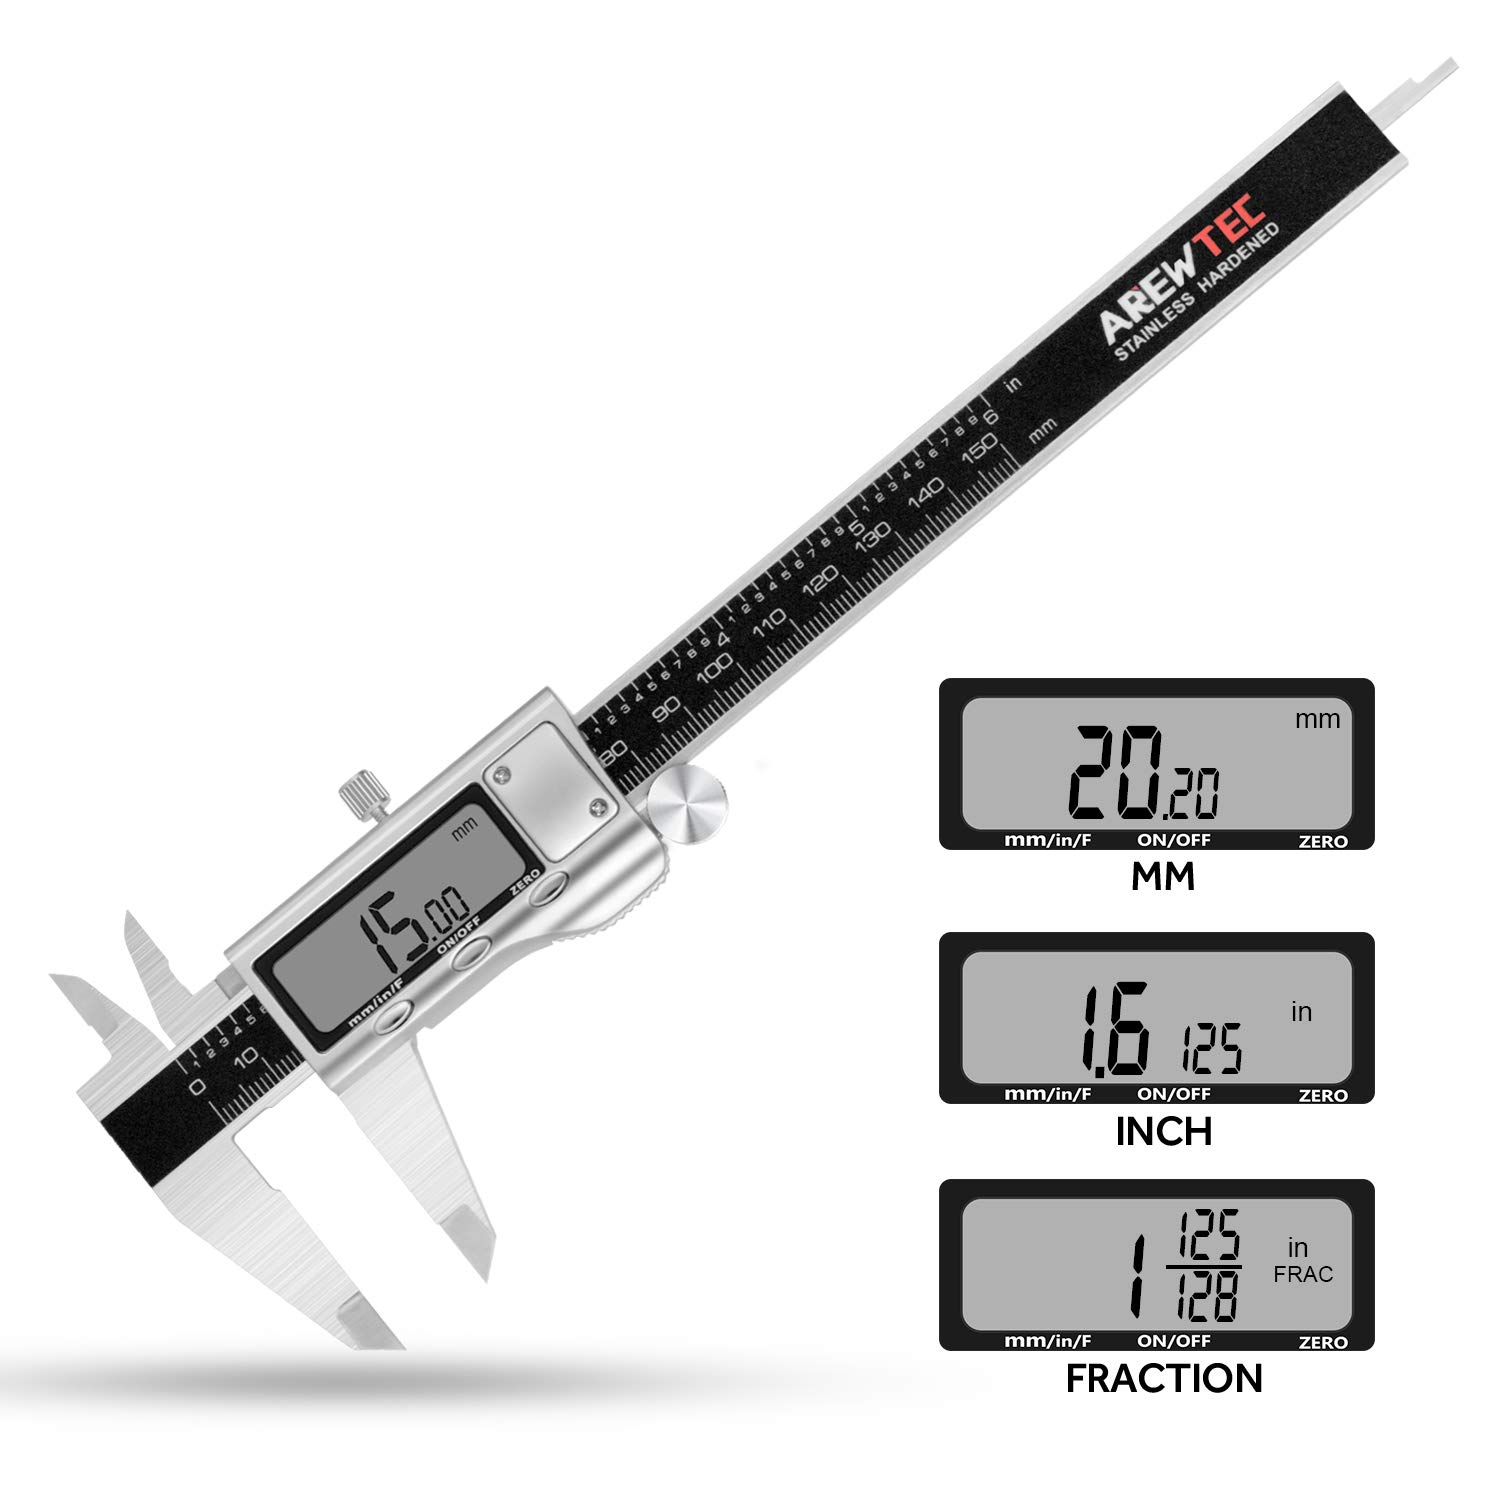 AREWTEC Electronic Digital Caliper 6 Inch/150mm Stainless Steel, DCN15A Polished Frosted Hardened Inch/Fractions/Metric Accurate Conversion Measurement, LCD Vernier Caliper Black